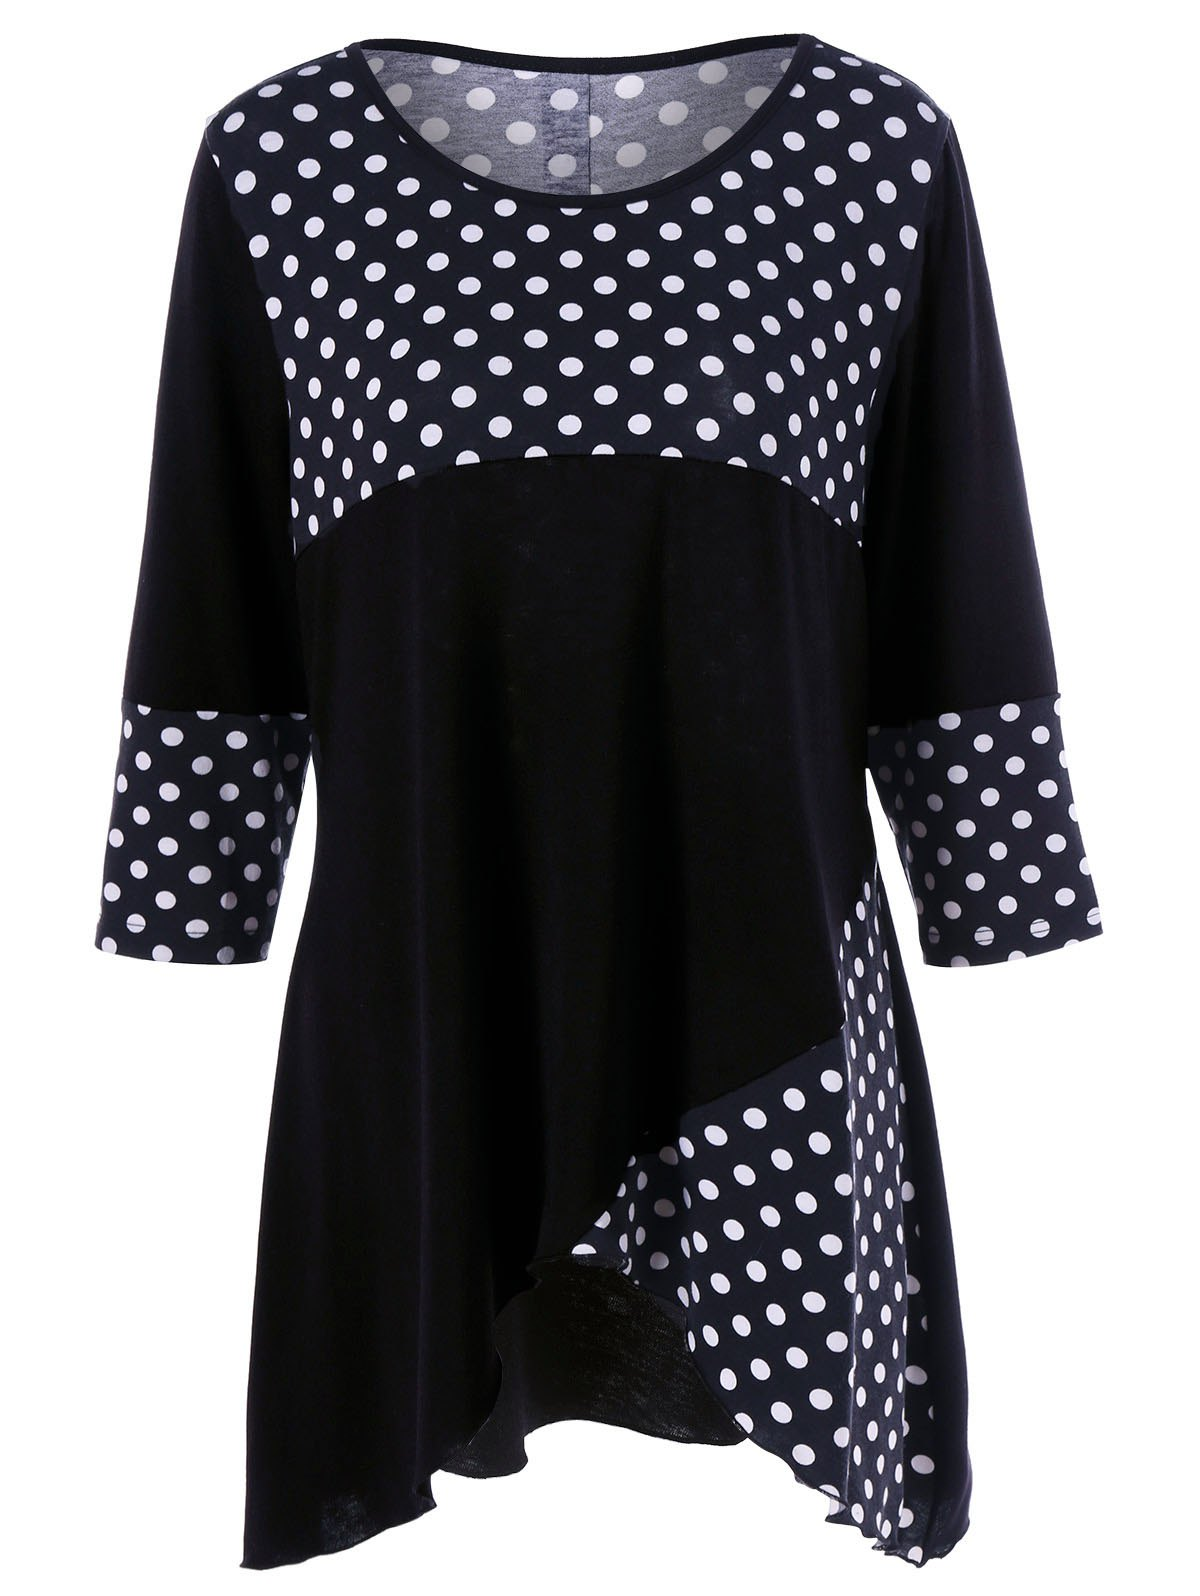 Polka Dot Plus Size Tulip Hem T-Shirt plus size polka dot baggy t shirt